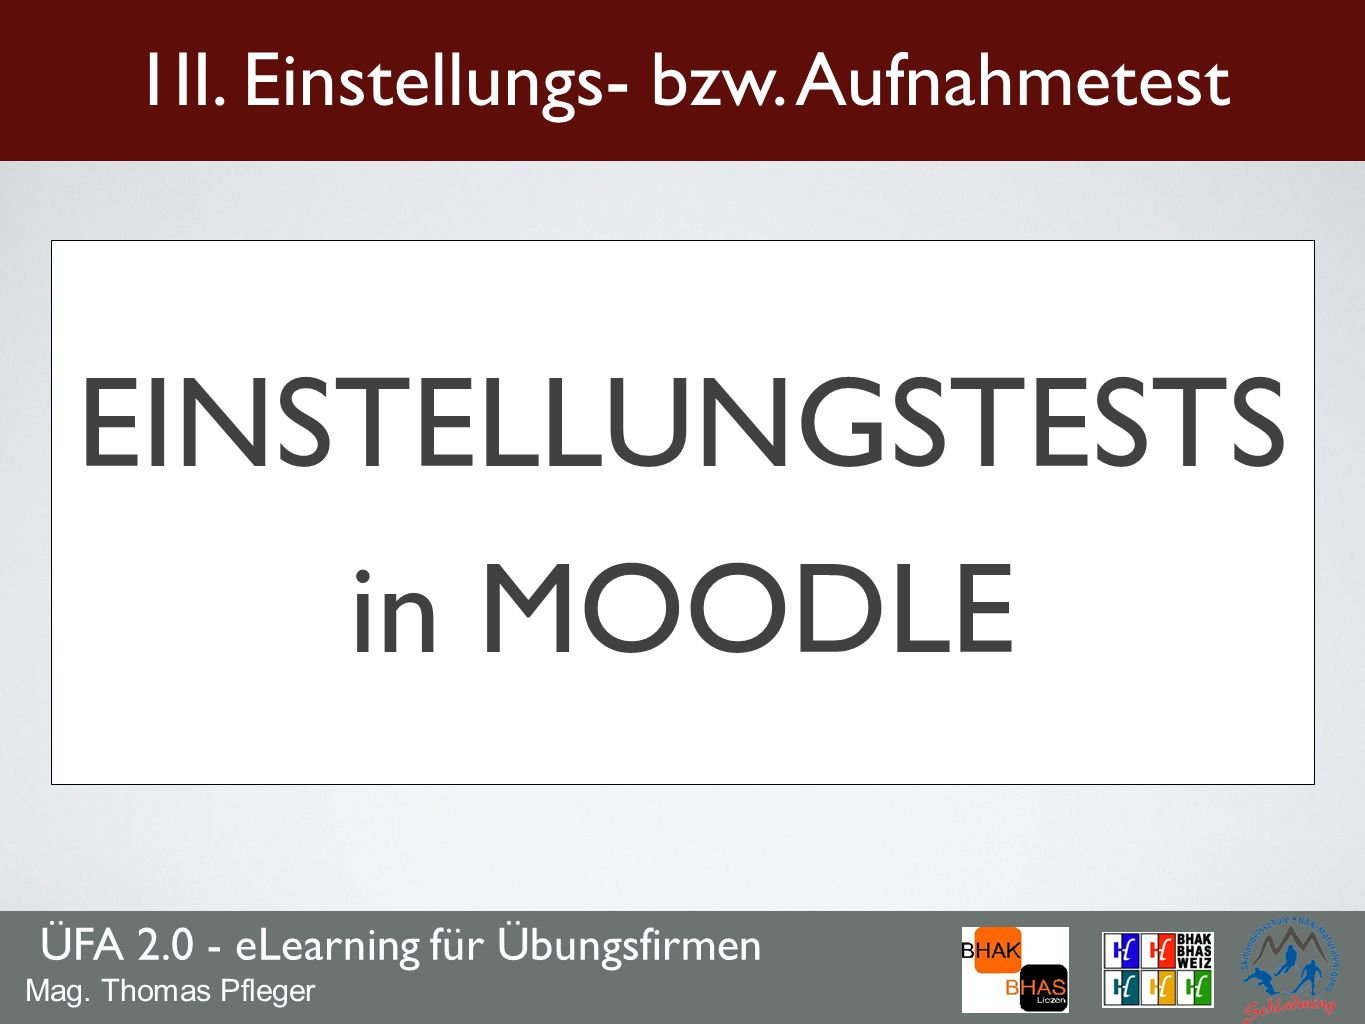 EINSTELLUNGSTESTS in MOODLE